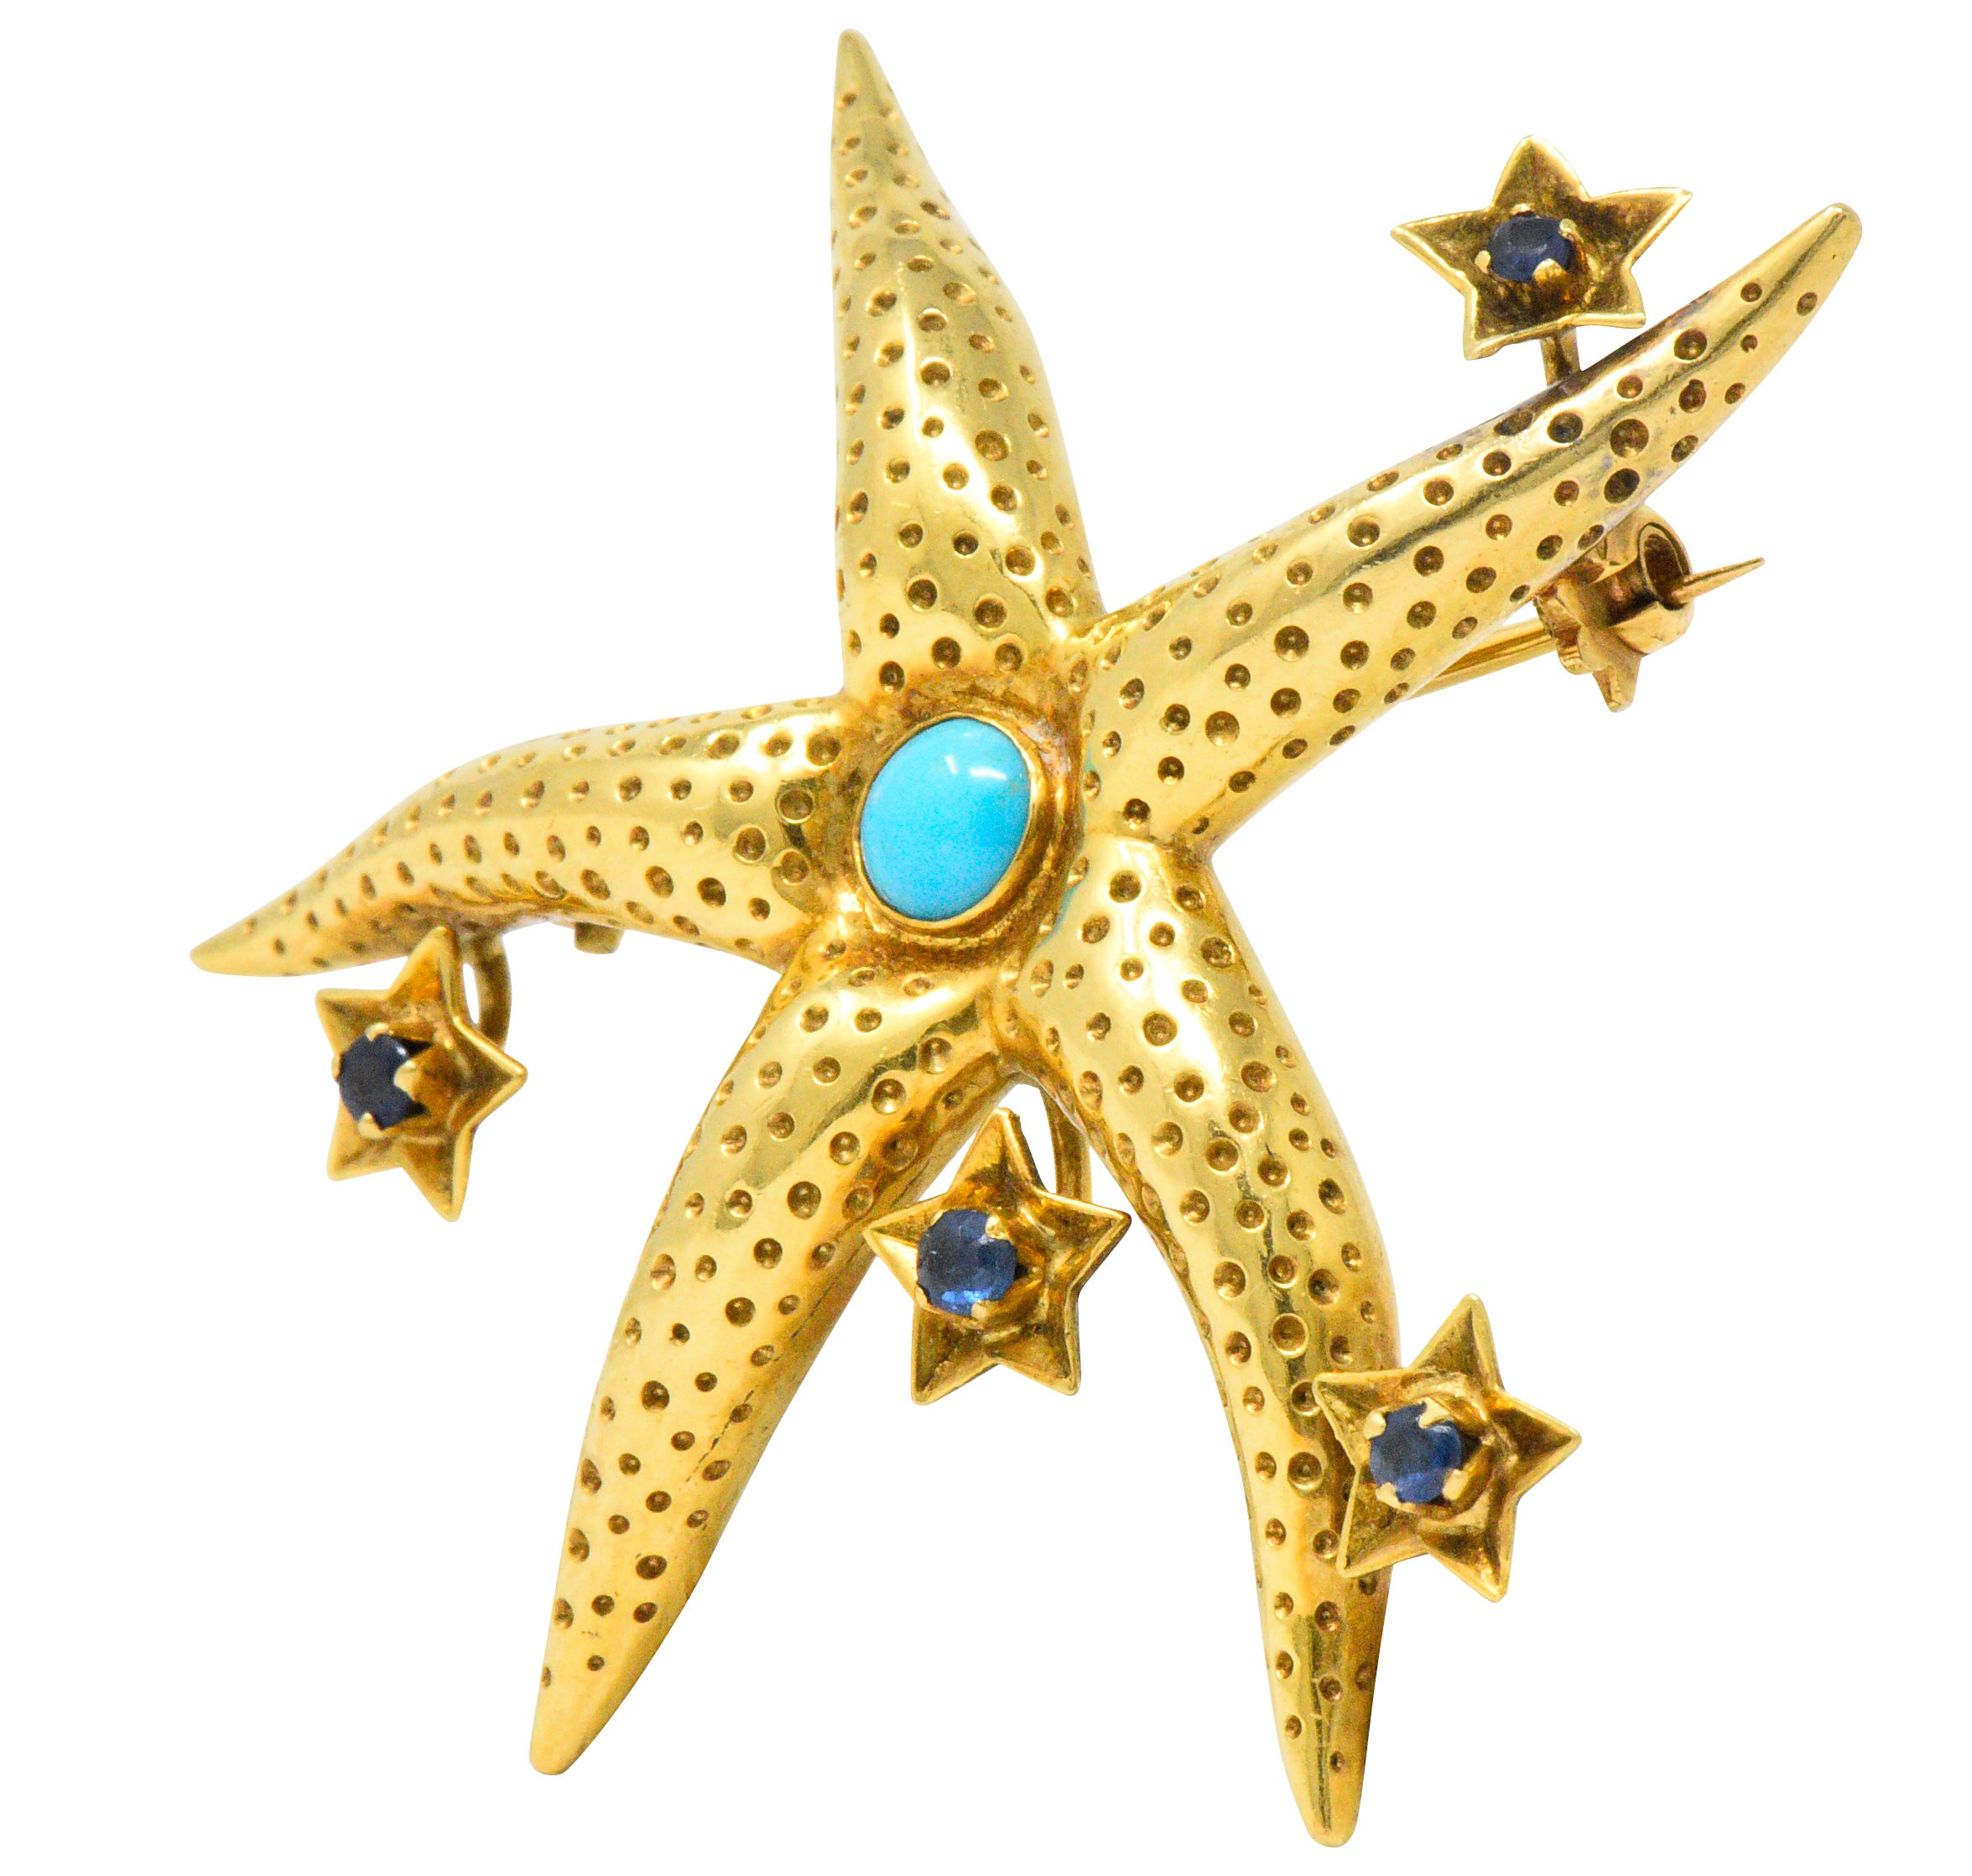 4946be648 Tiffany and Co. Retro Sapphire Turquoise 18 Karat Gold Starfish Brooch at  1stdibs